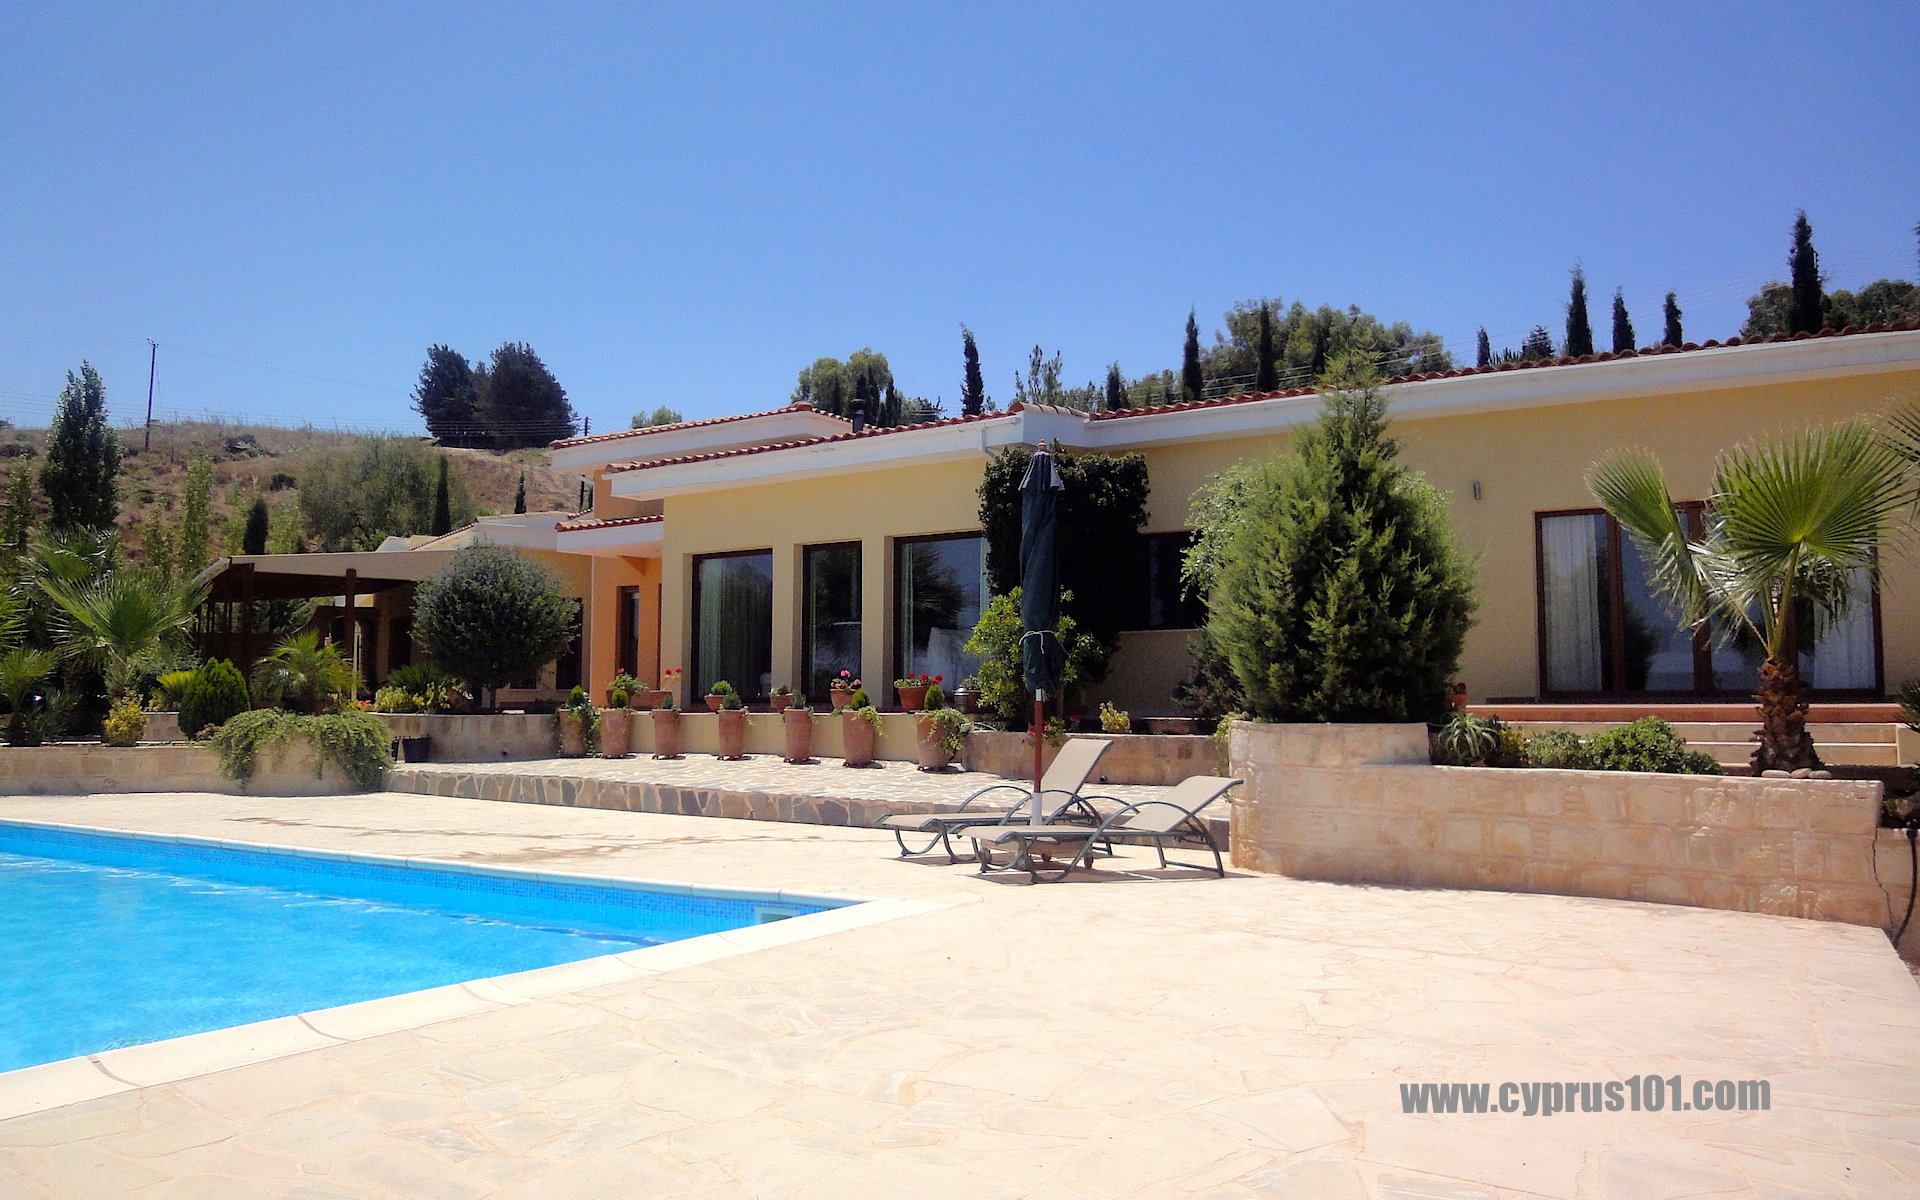 Droushia property for sale Paphos